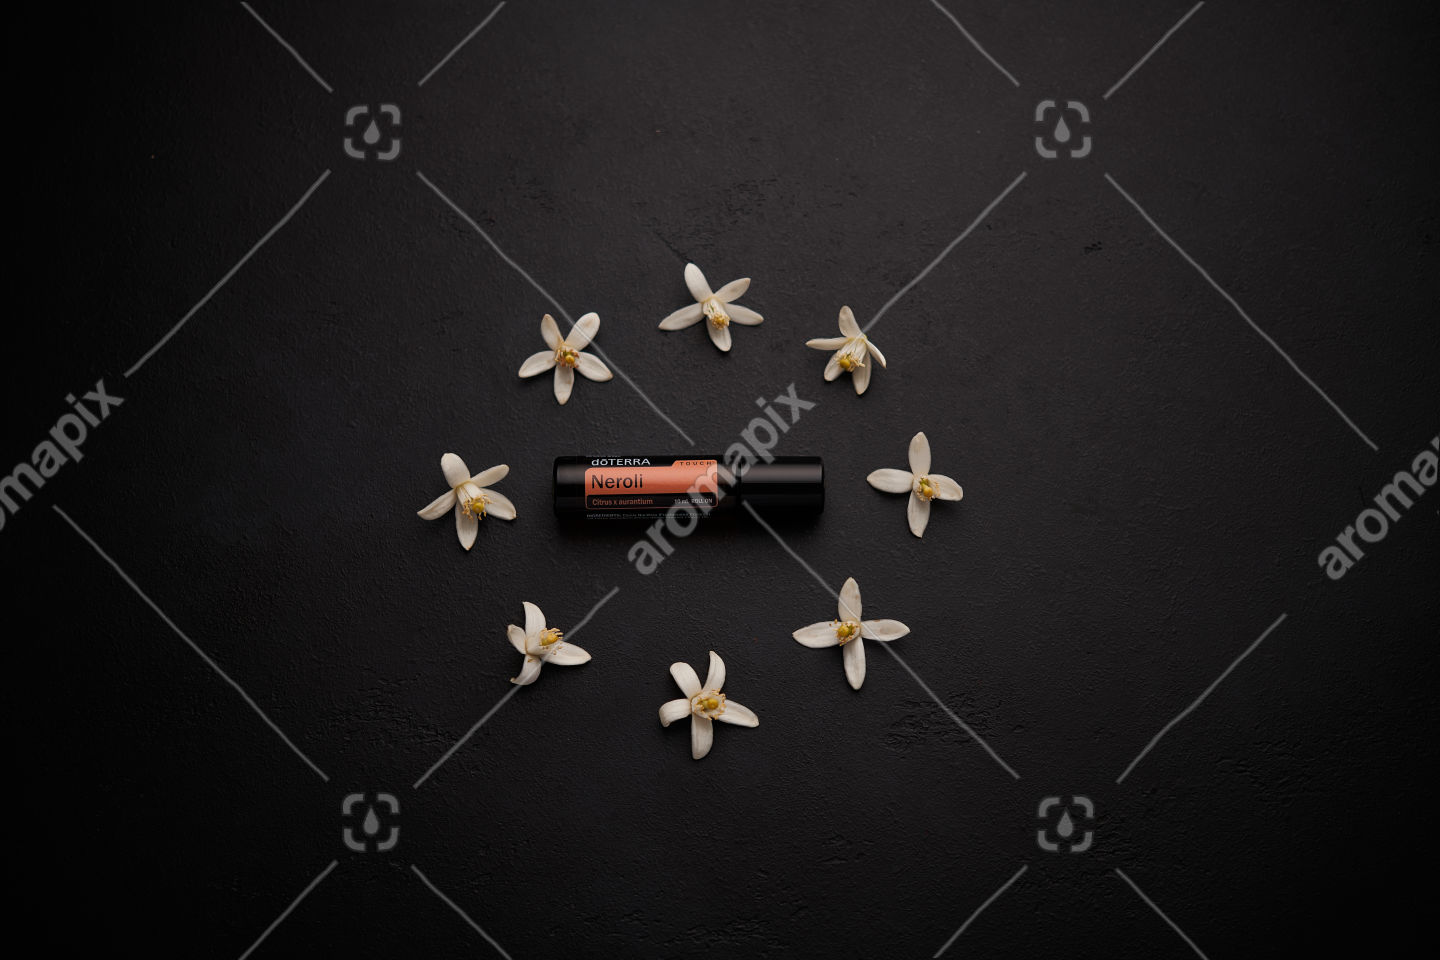 doTERRA Neroli Touch with orange blossoms on black